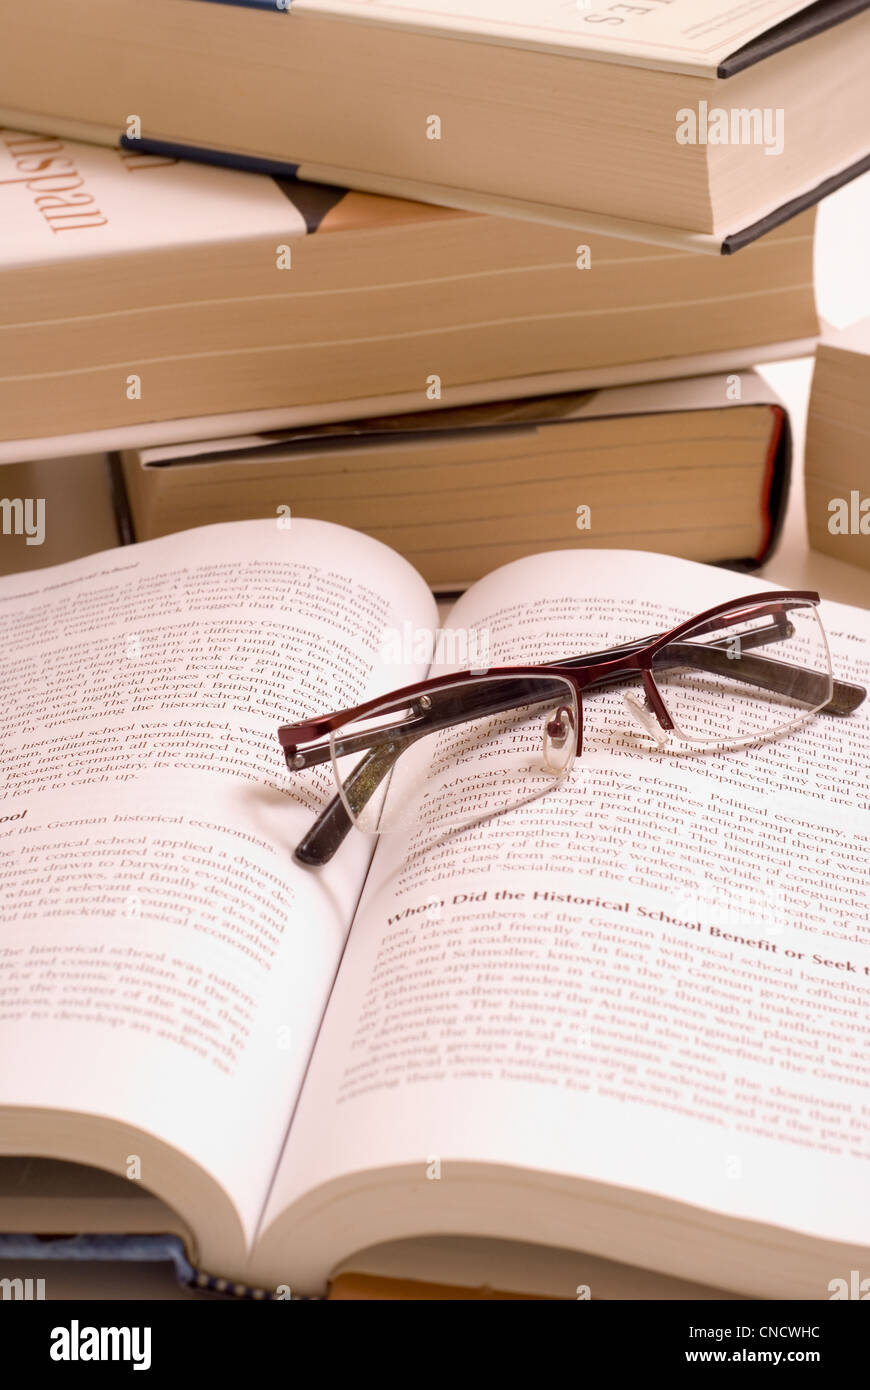 Pile of books with open book and reading glasses. - Stock Image